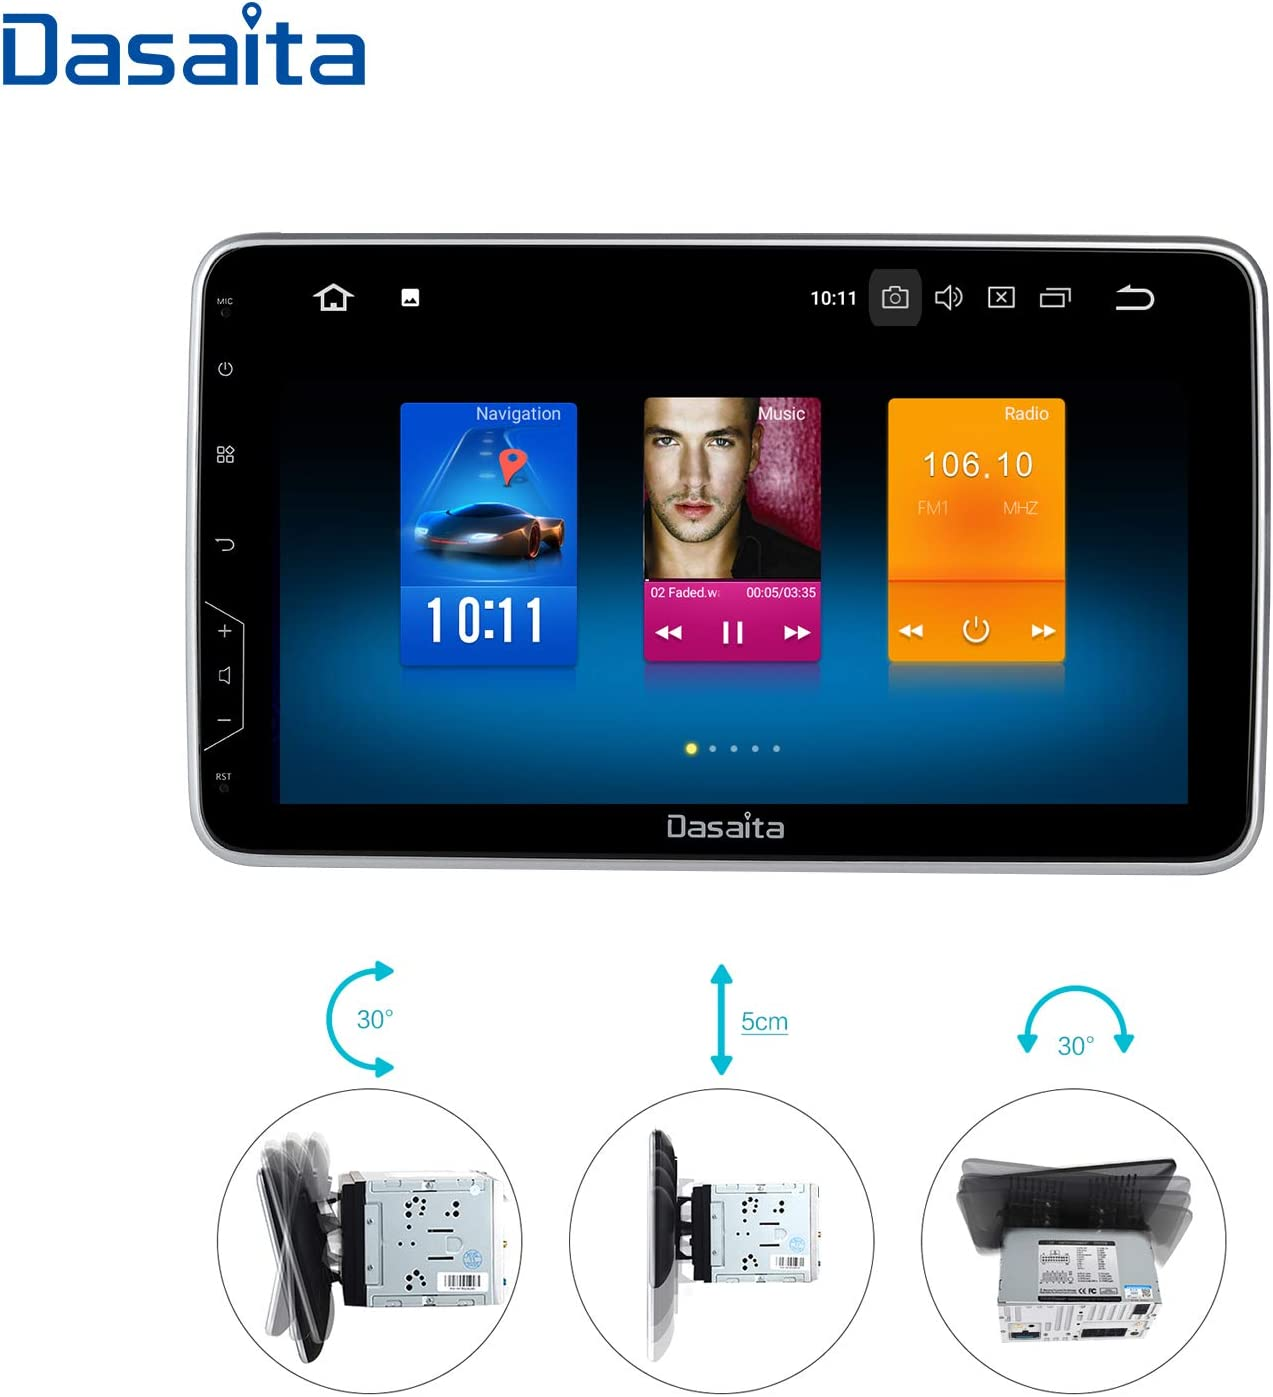 Dasaita 10.2 inch Rotatable Screen Android 9.0 Car Stereo for Any Vehicle with a Double din Slot Double Din Radio GPS 4G Ram 32G ROM Navigation Dash Kit 16G Meomery Card